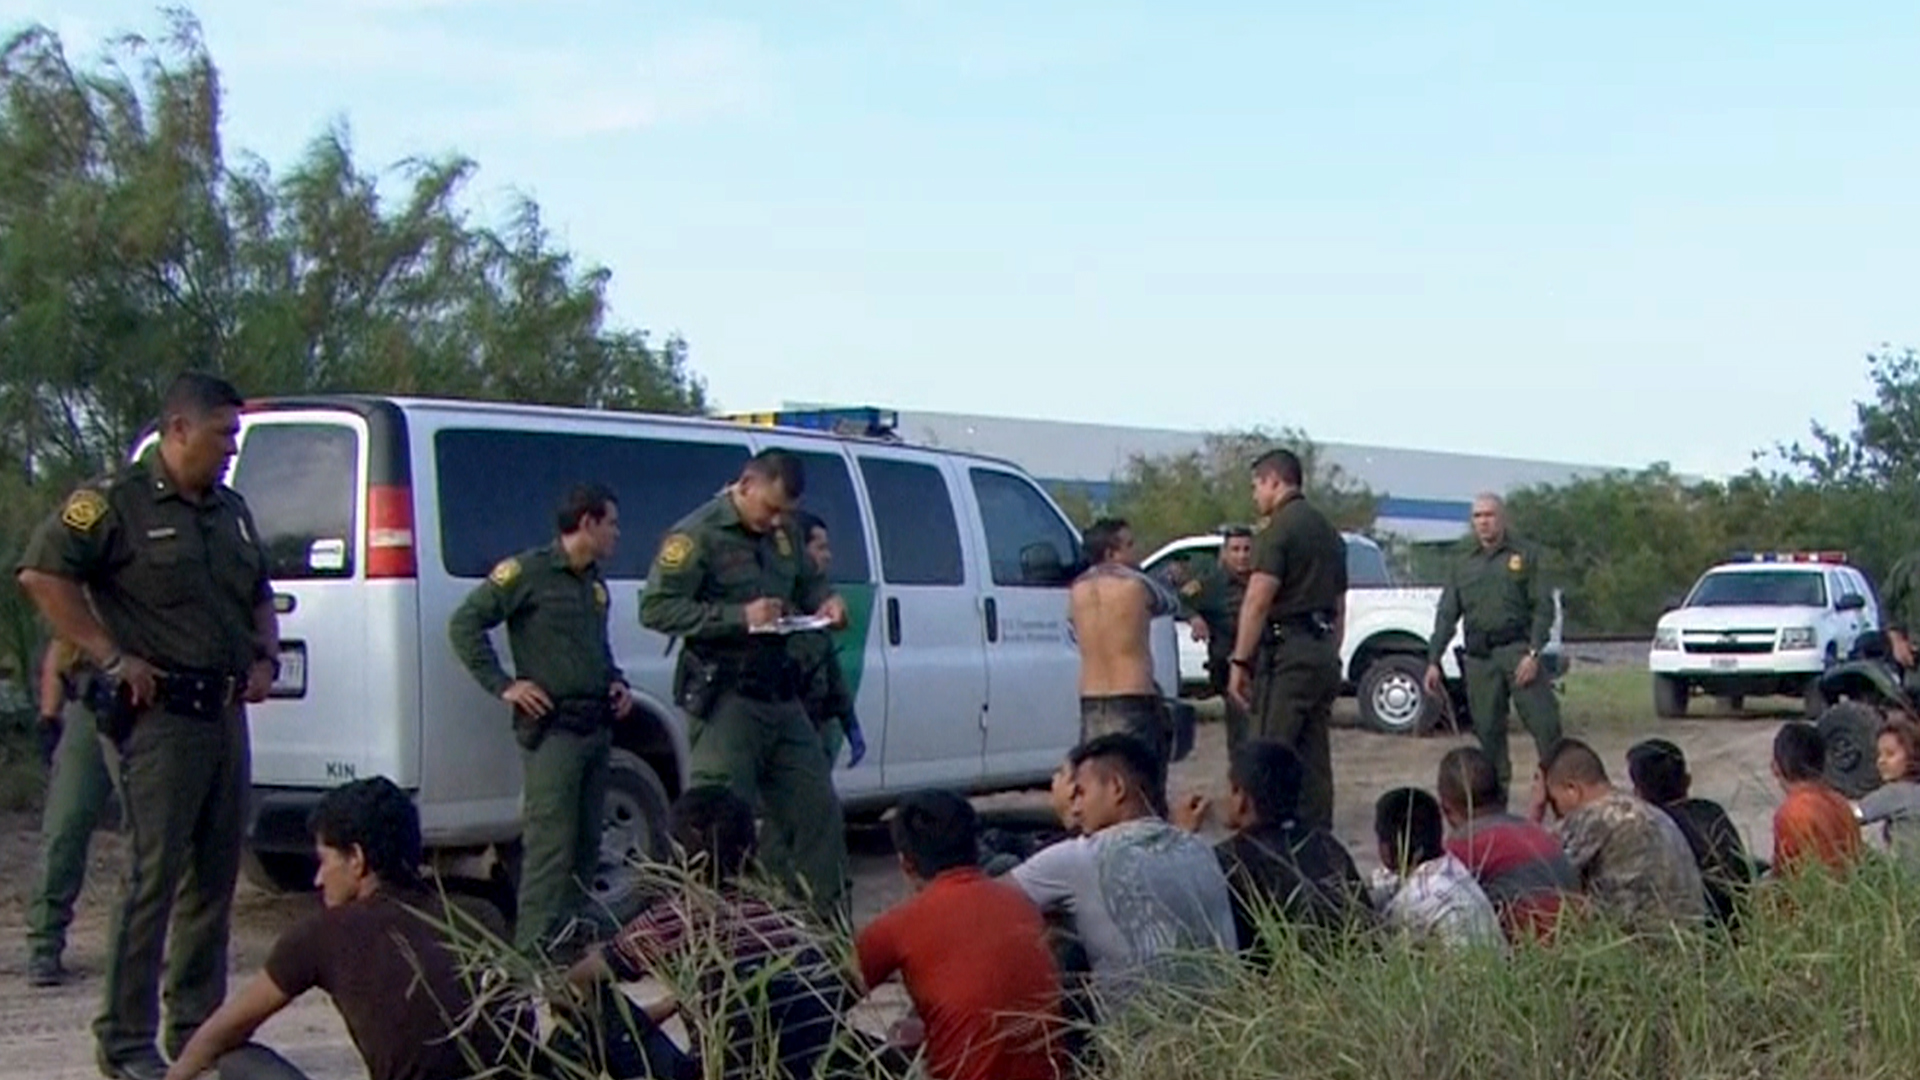 Arizona Residents Protest Arrival of Undocumented Immigrant Children